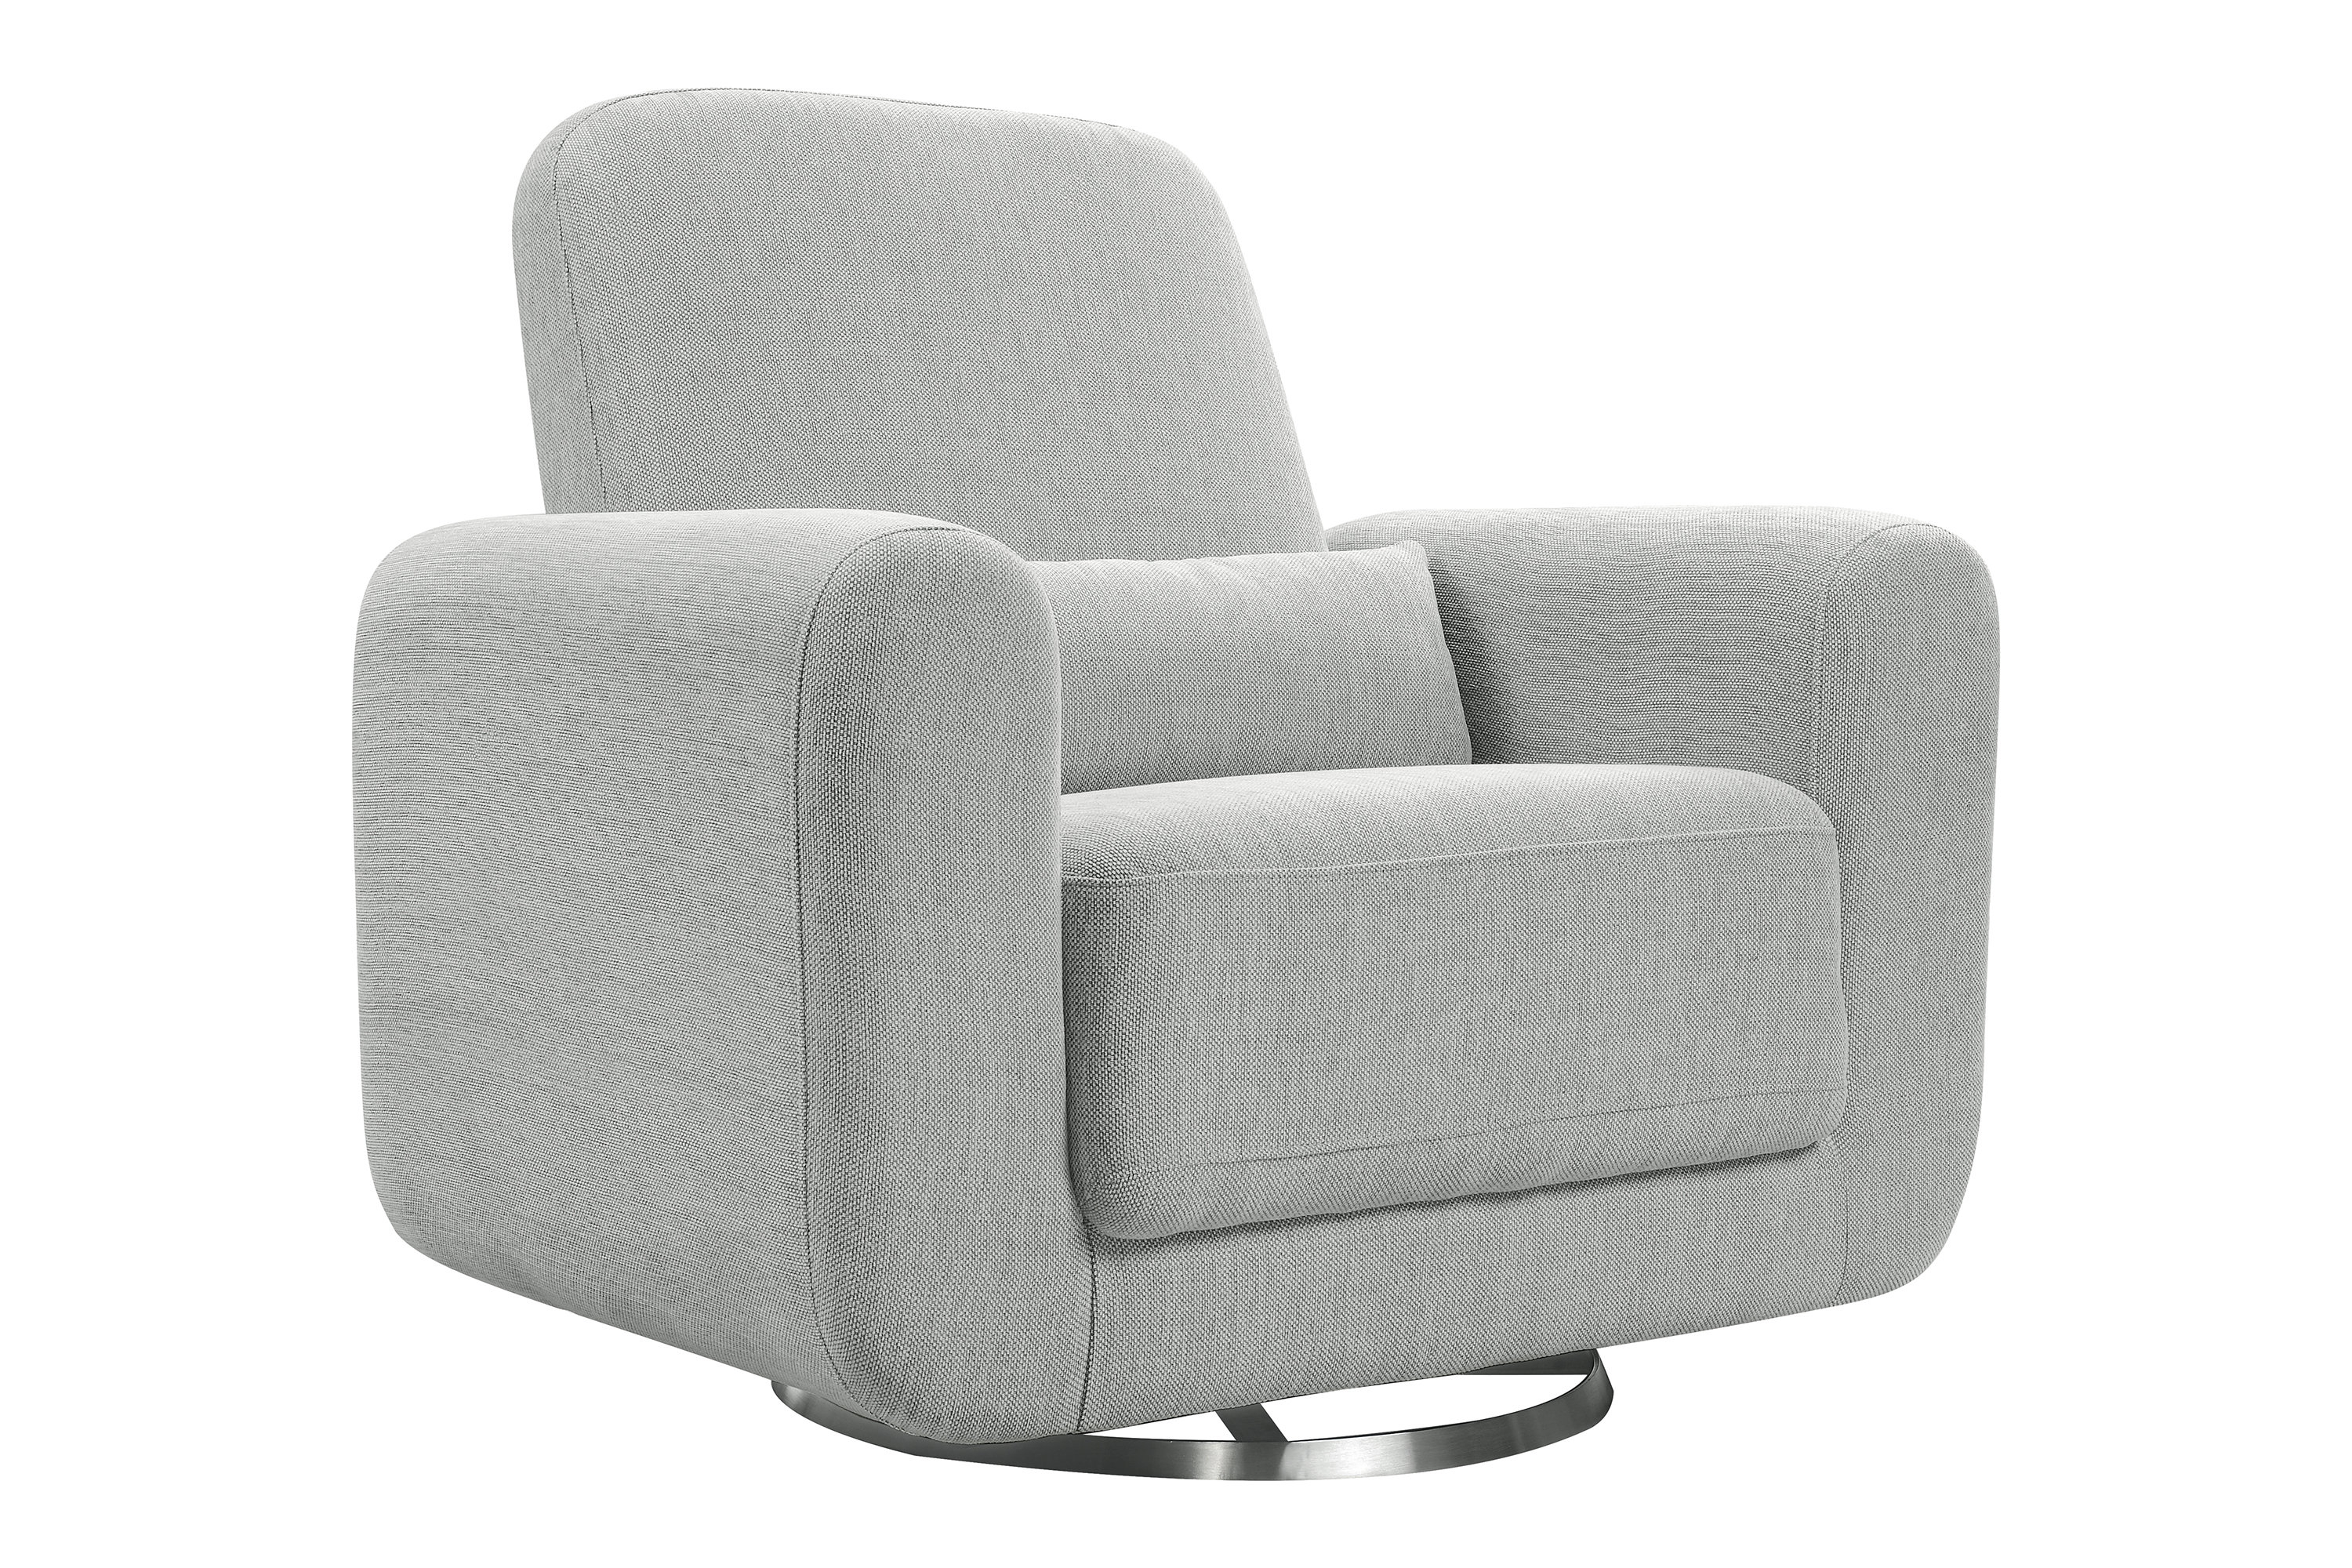 Well Known Mari Swivel Glider Recliners Inside Tuba Swivel Glider & Reviews (View 20 of 20)